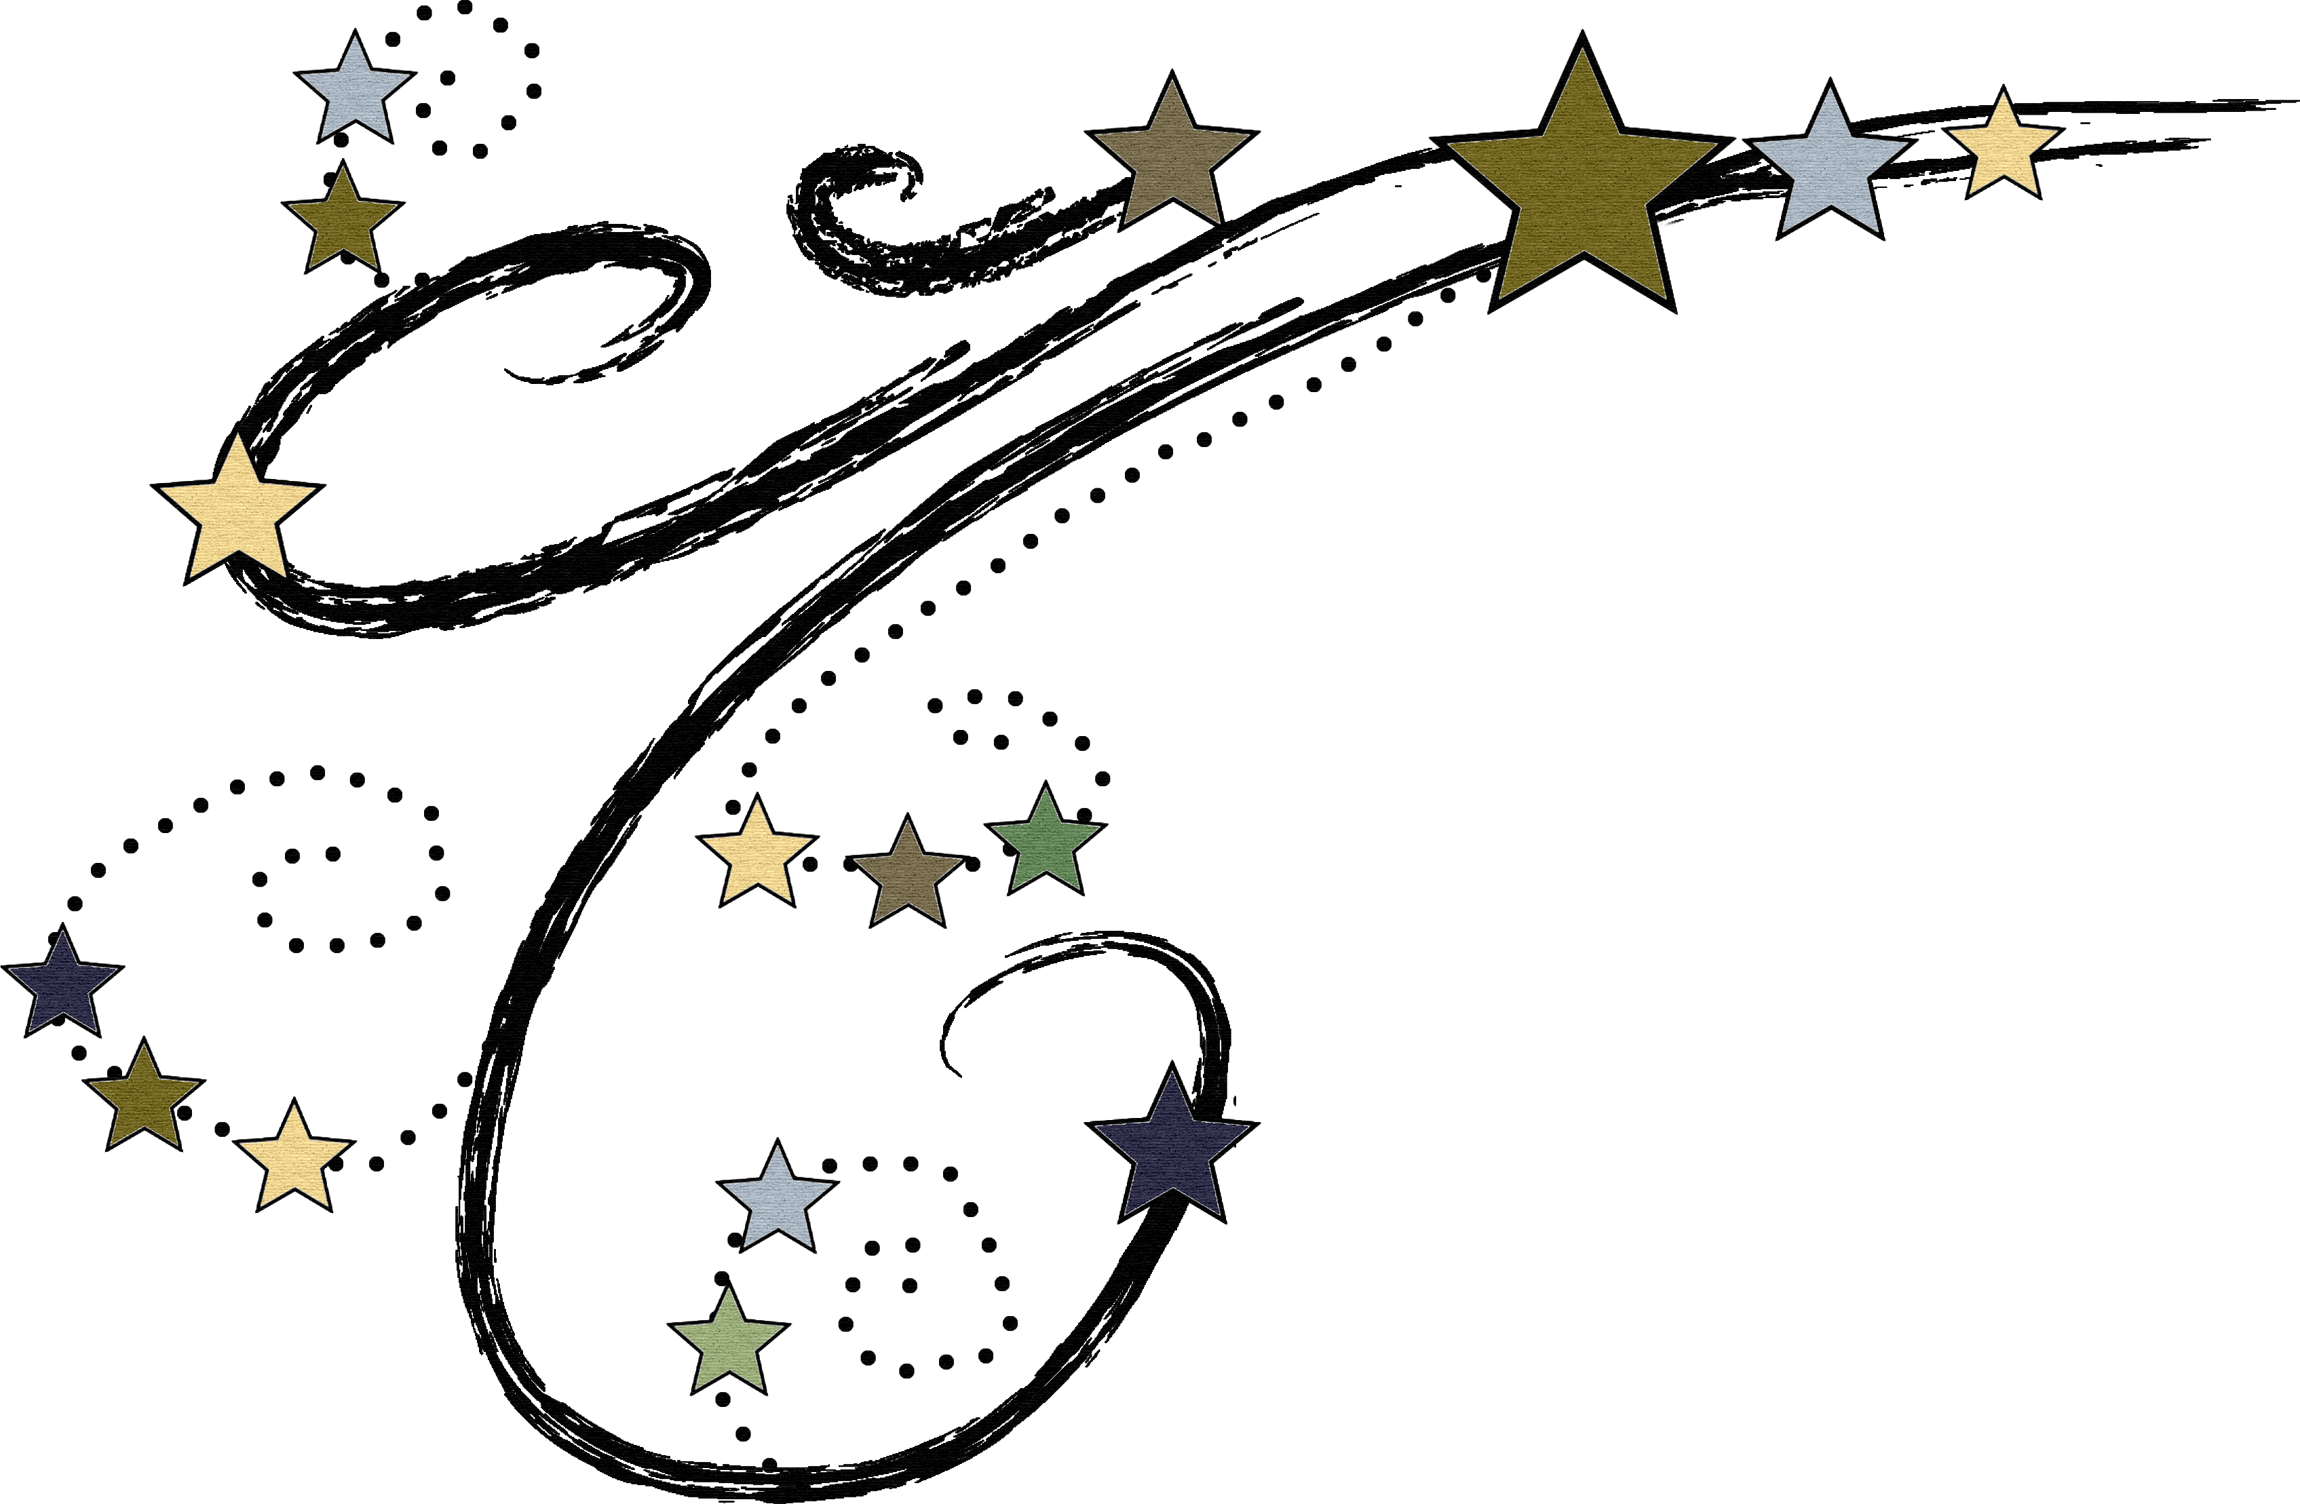 Falling Stars clipart all star On Cliparts Quality Clip 4